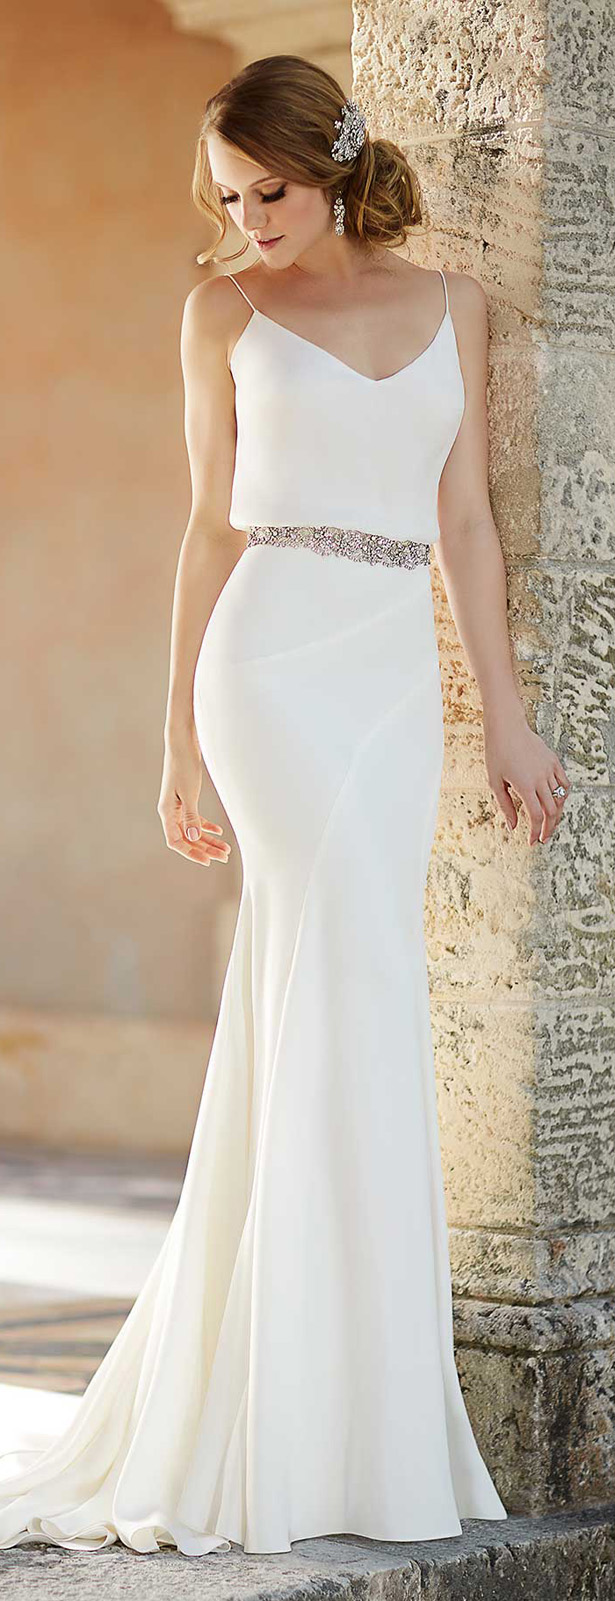 Simple Wedding Dress Boutique : Martina liana spring bridal collection belle the